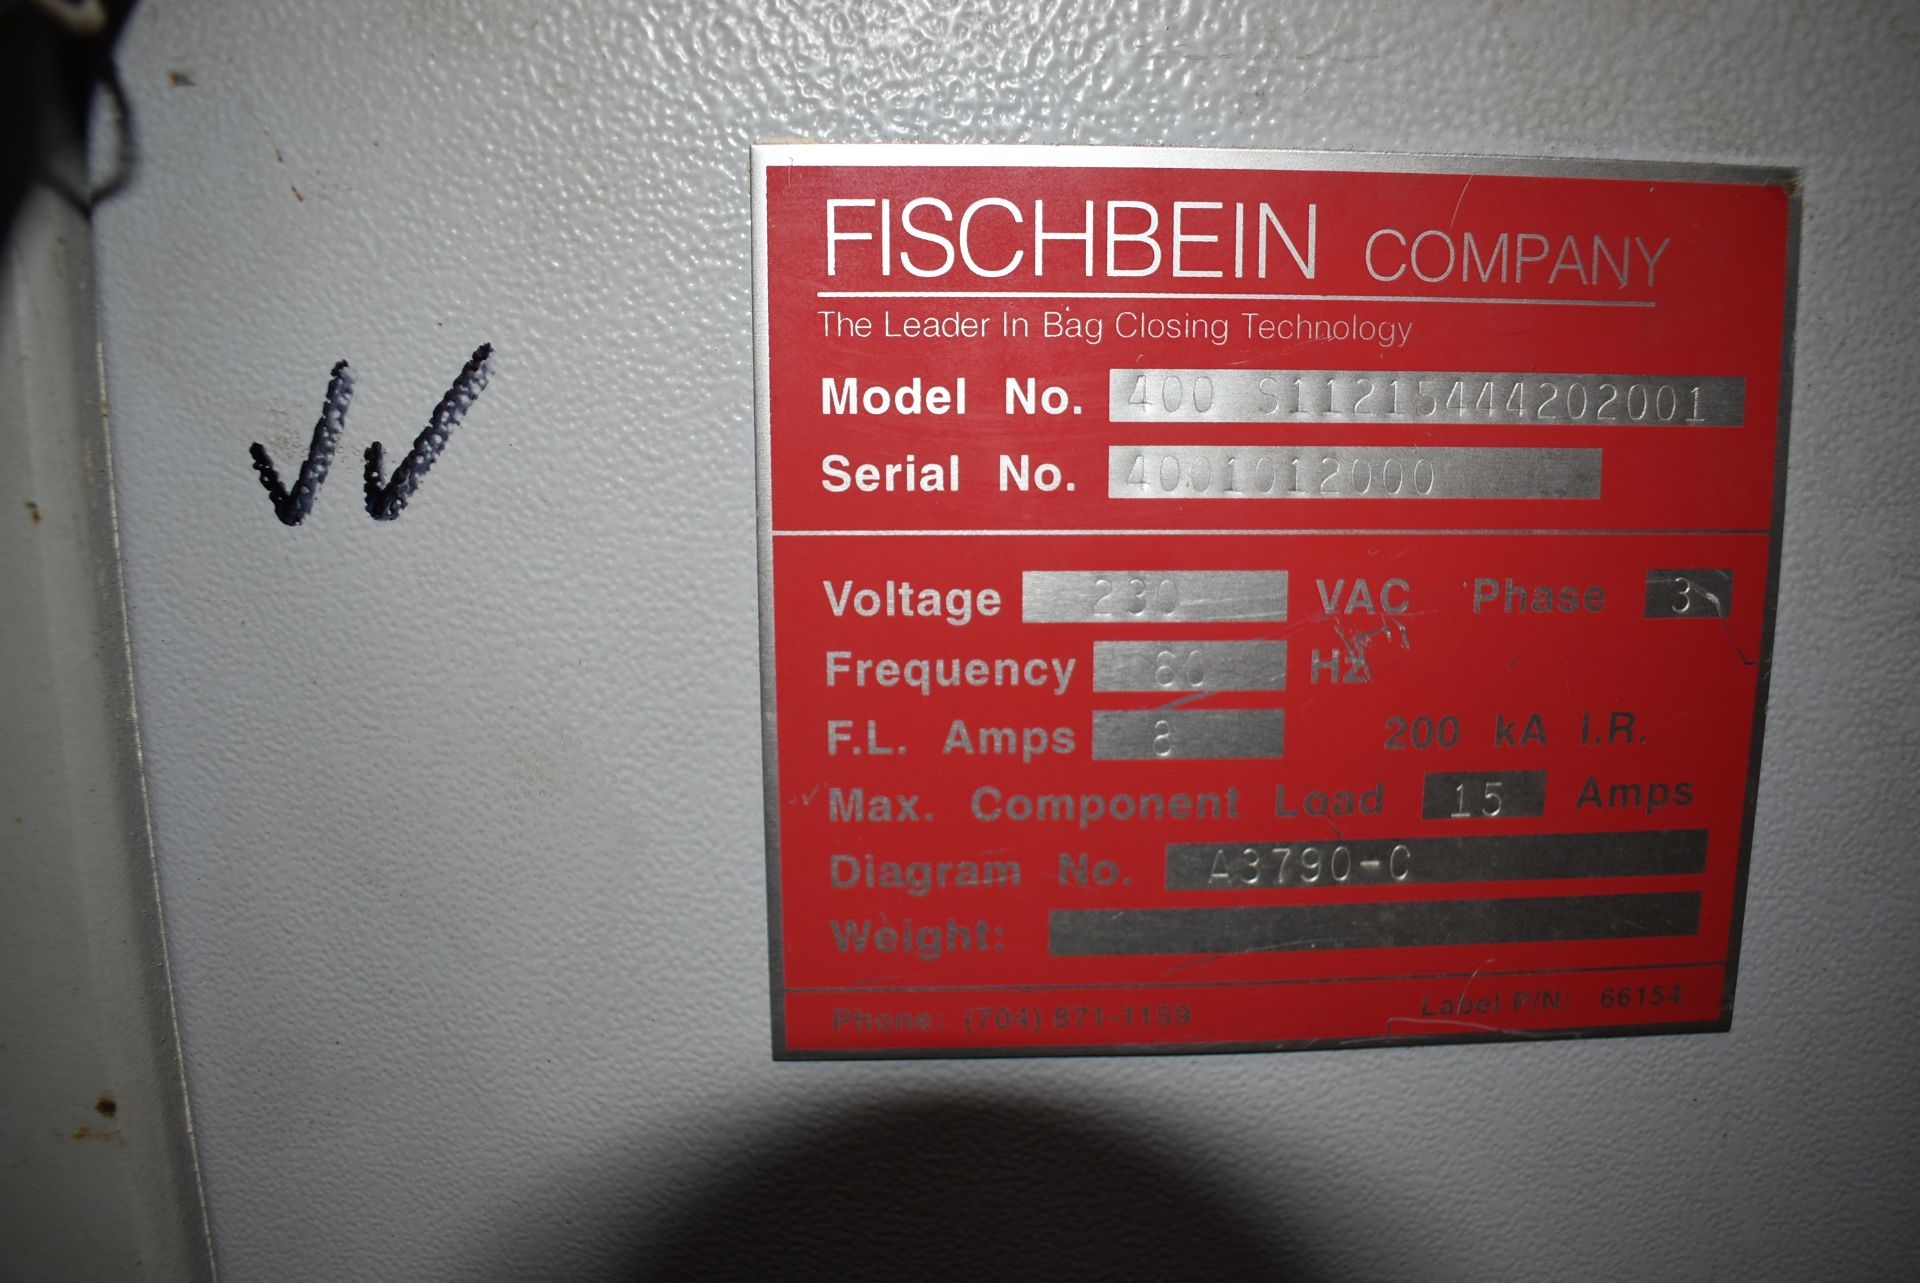 Fischbein Model #400 Series Industrial Sewing Machine - Image 2 of 2